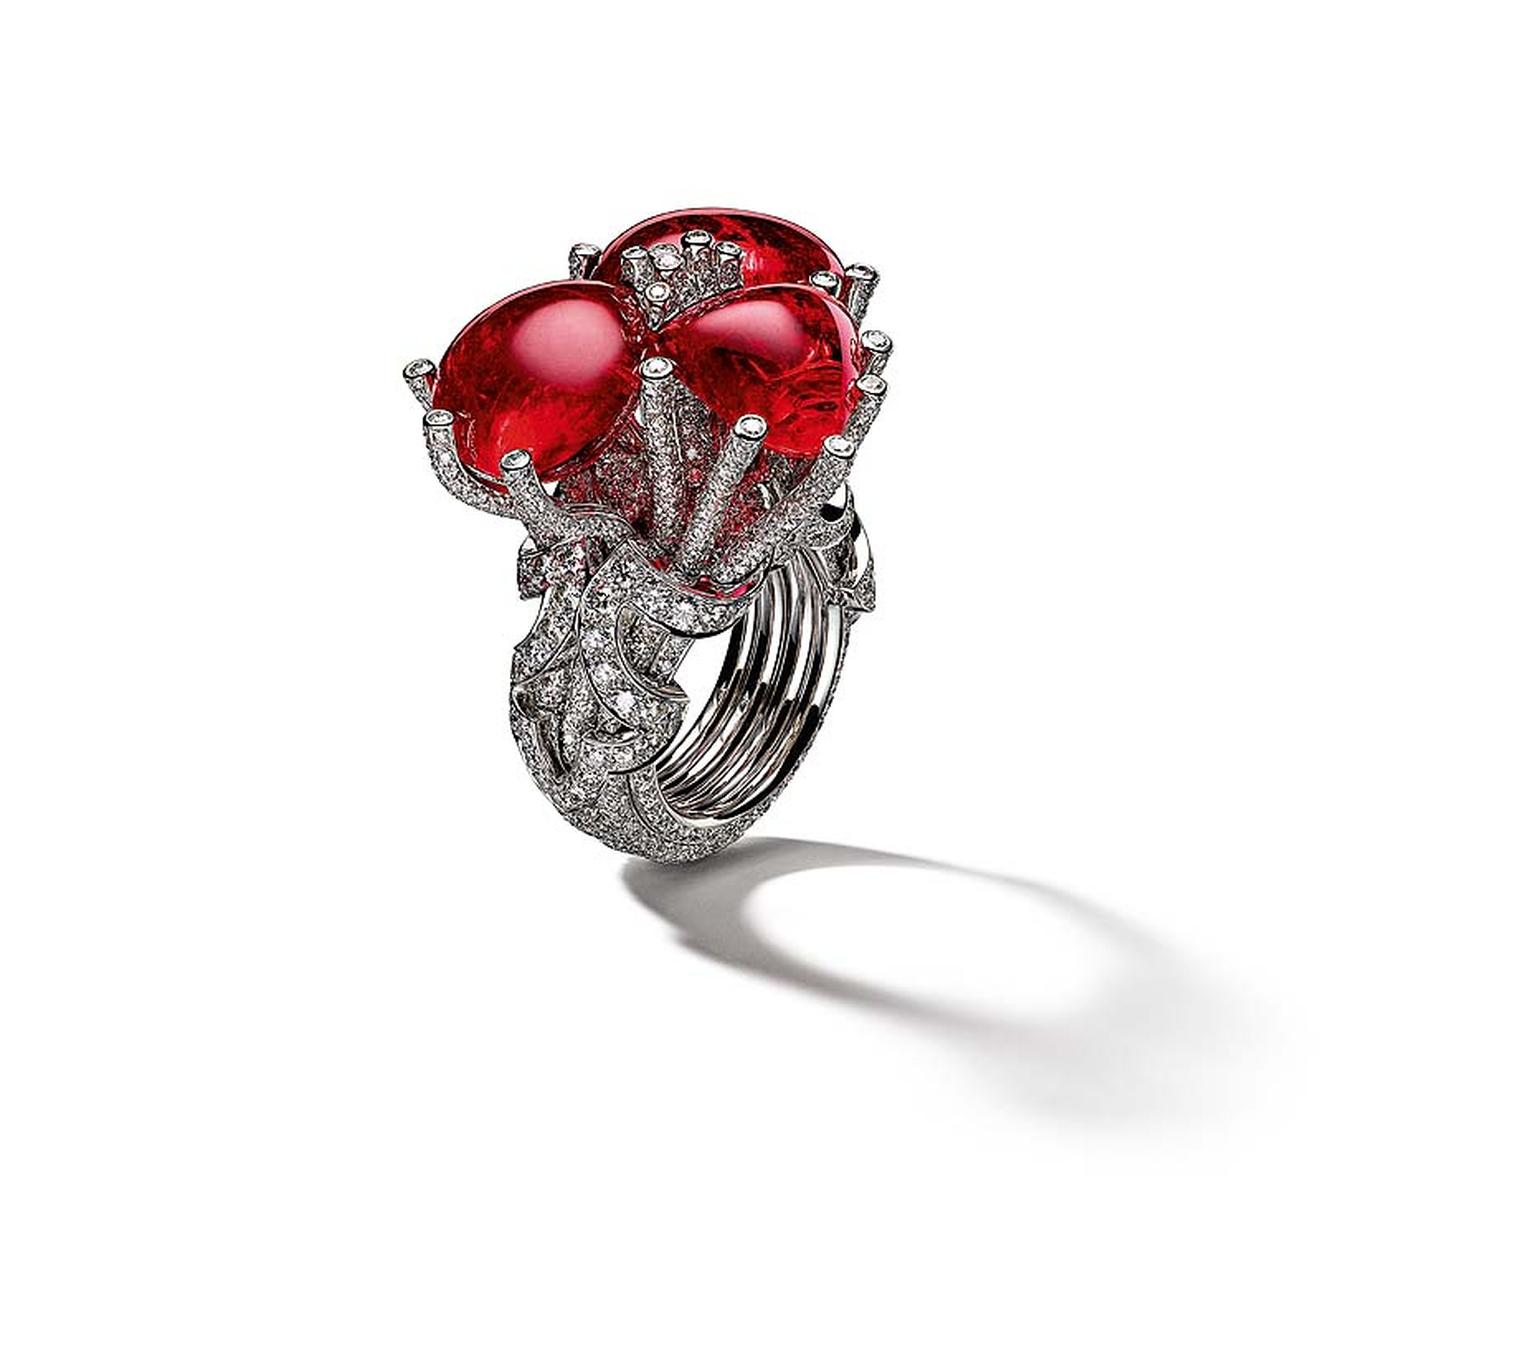 Giampiero Bodino Tesori Del Mare ring in white gold and diamonds, set with three red spinels.